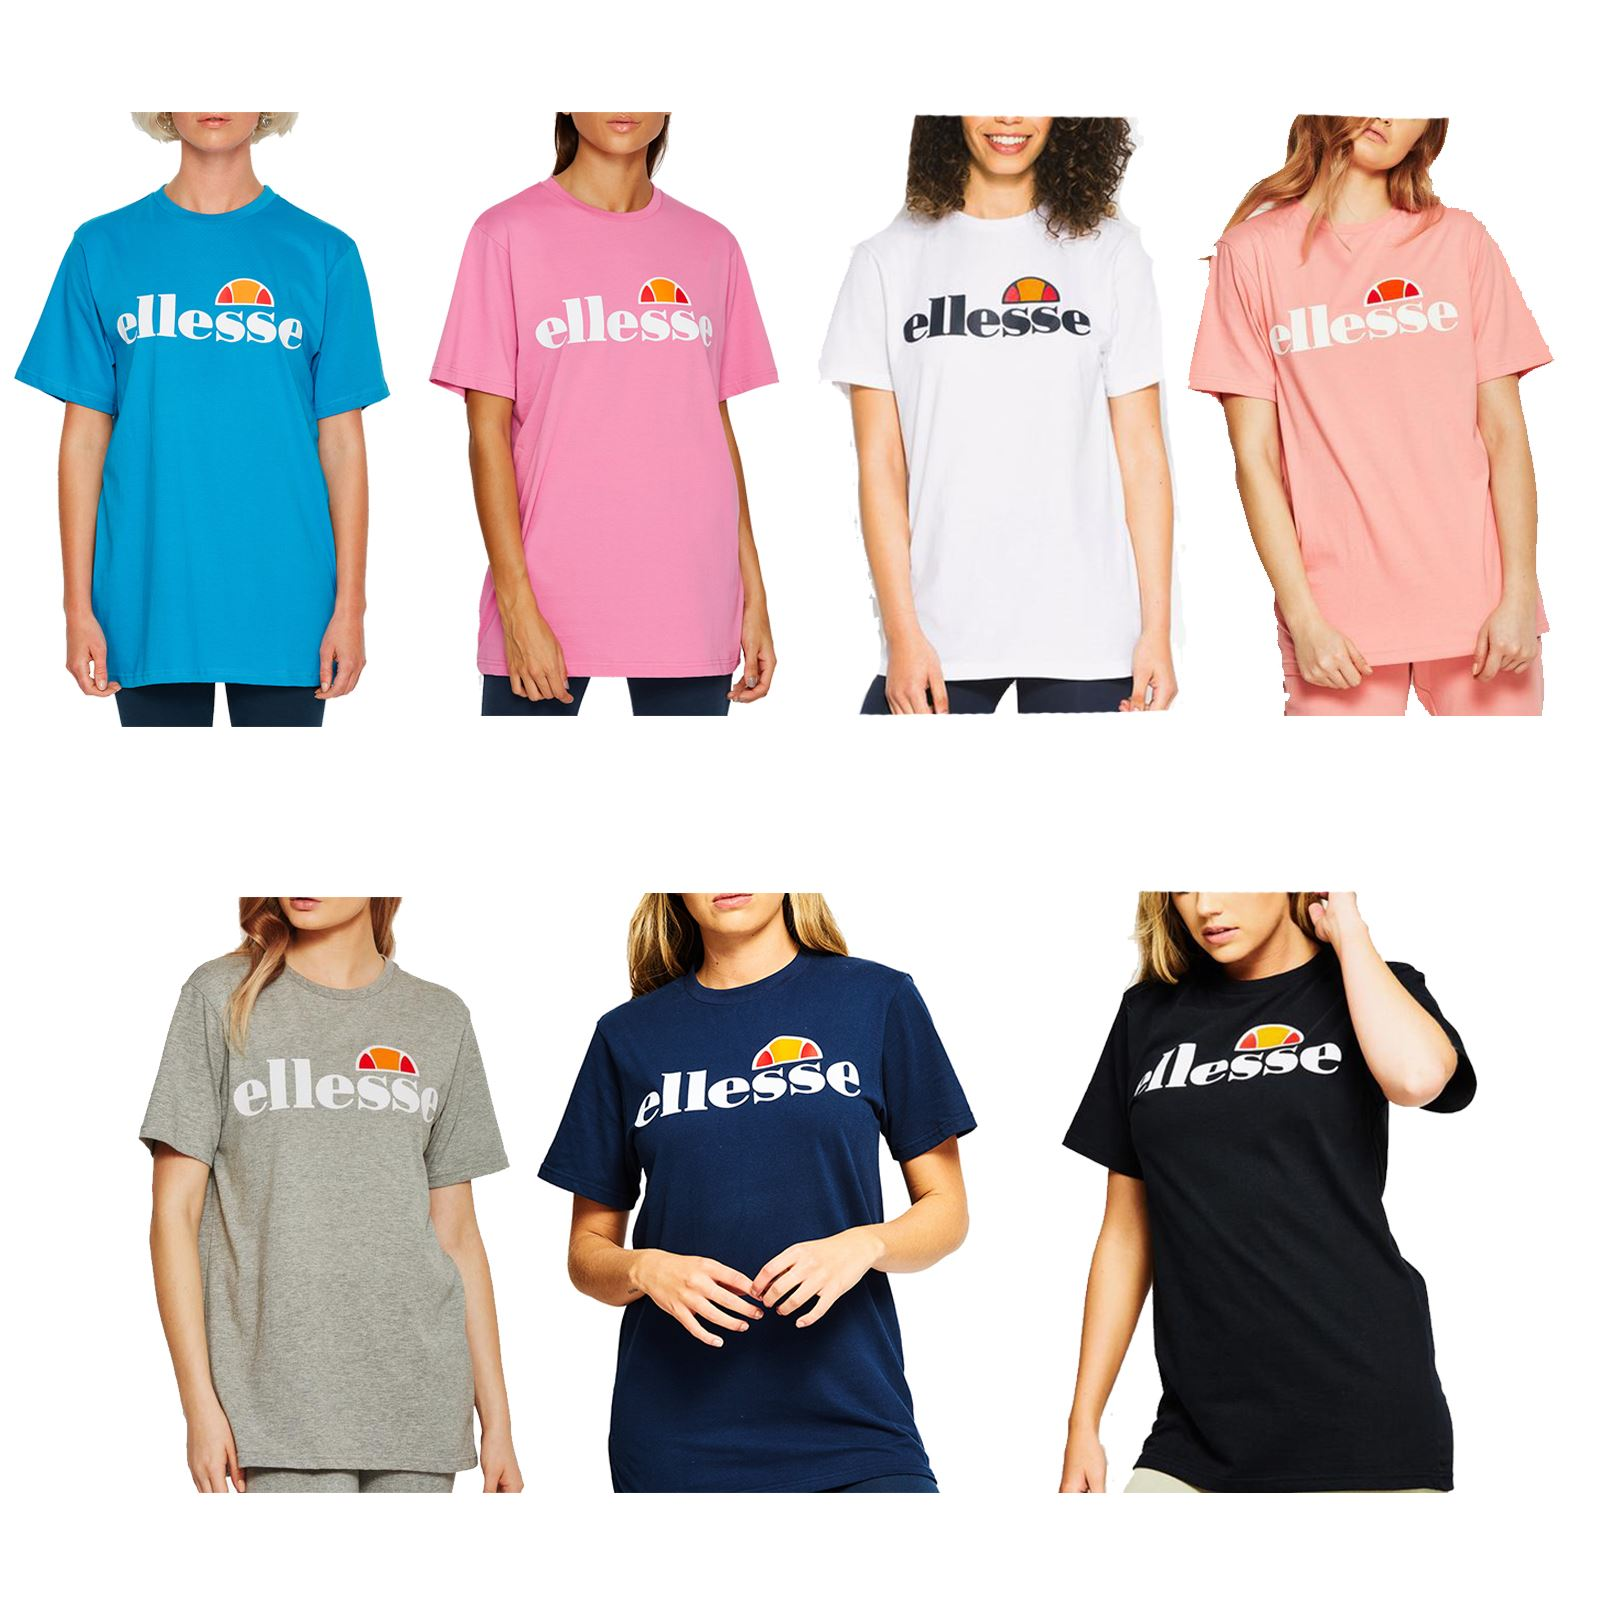 e2d7ee87 Details about Ellesse Albany Women T-Shirt Optic White, Dress Blue & Soft  Pink & Anthracite